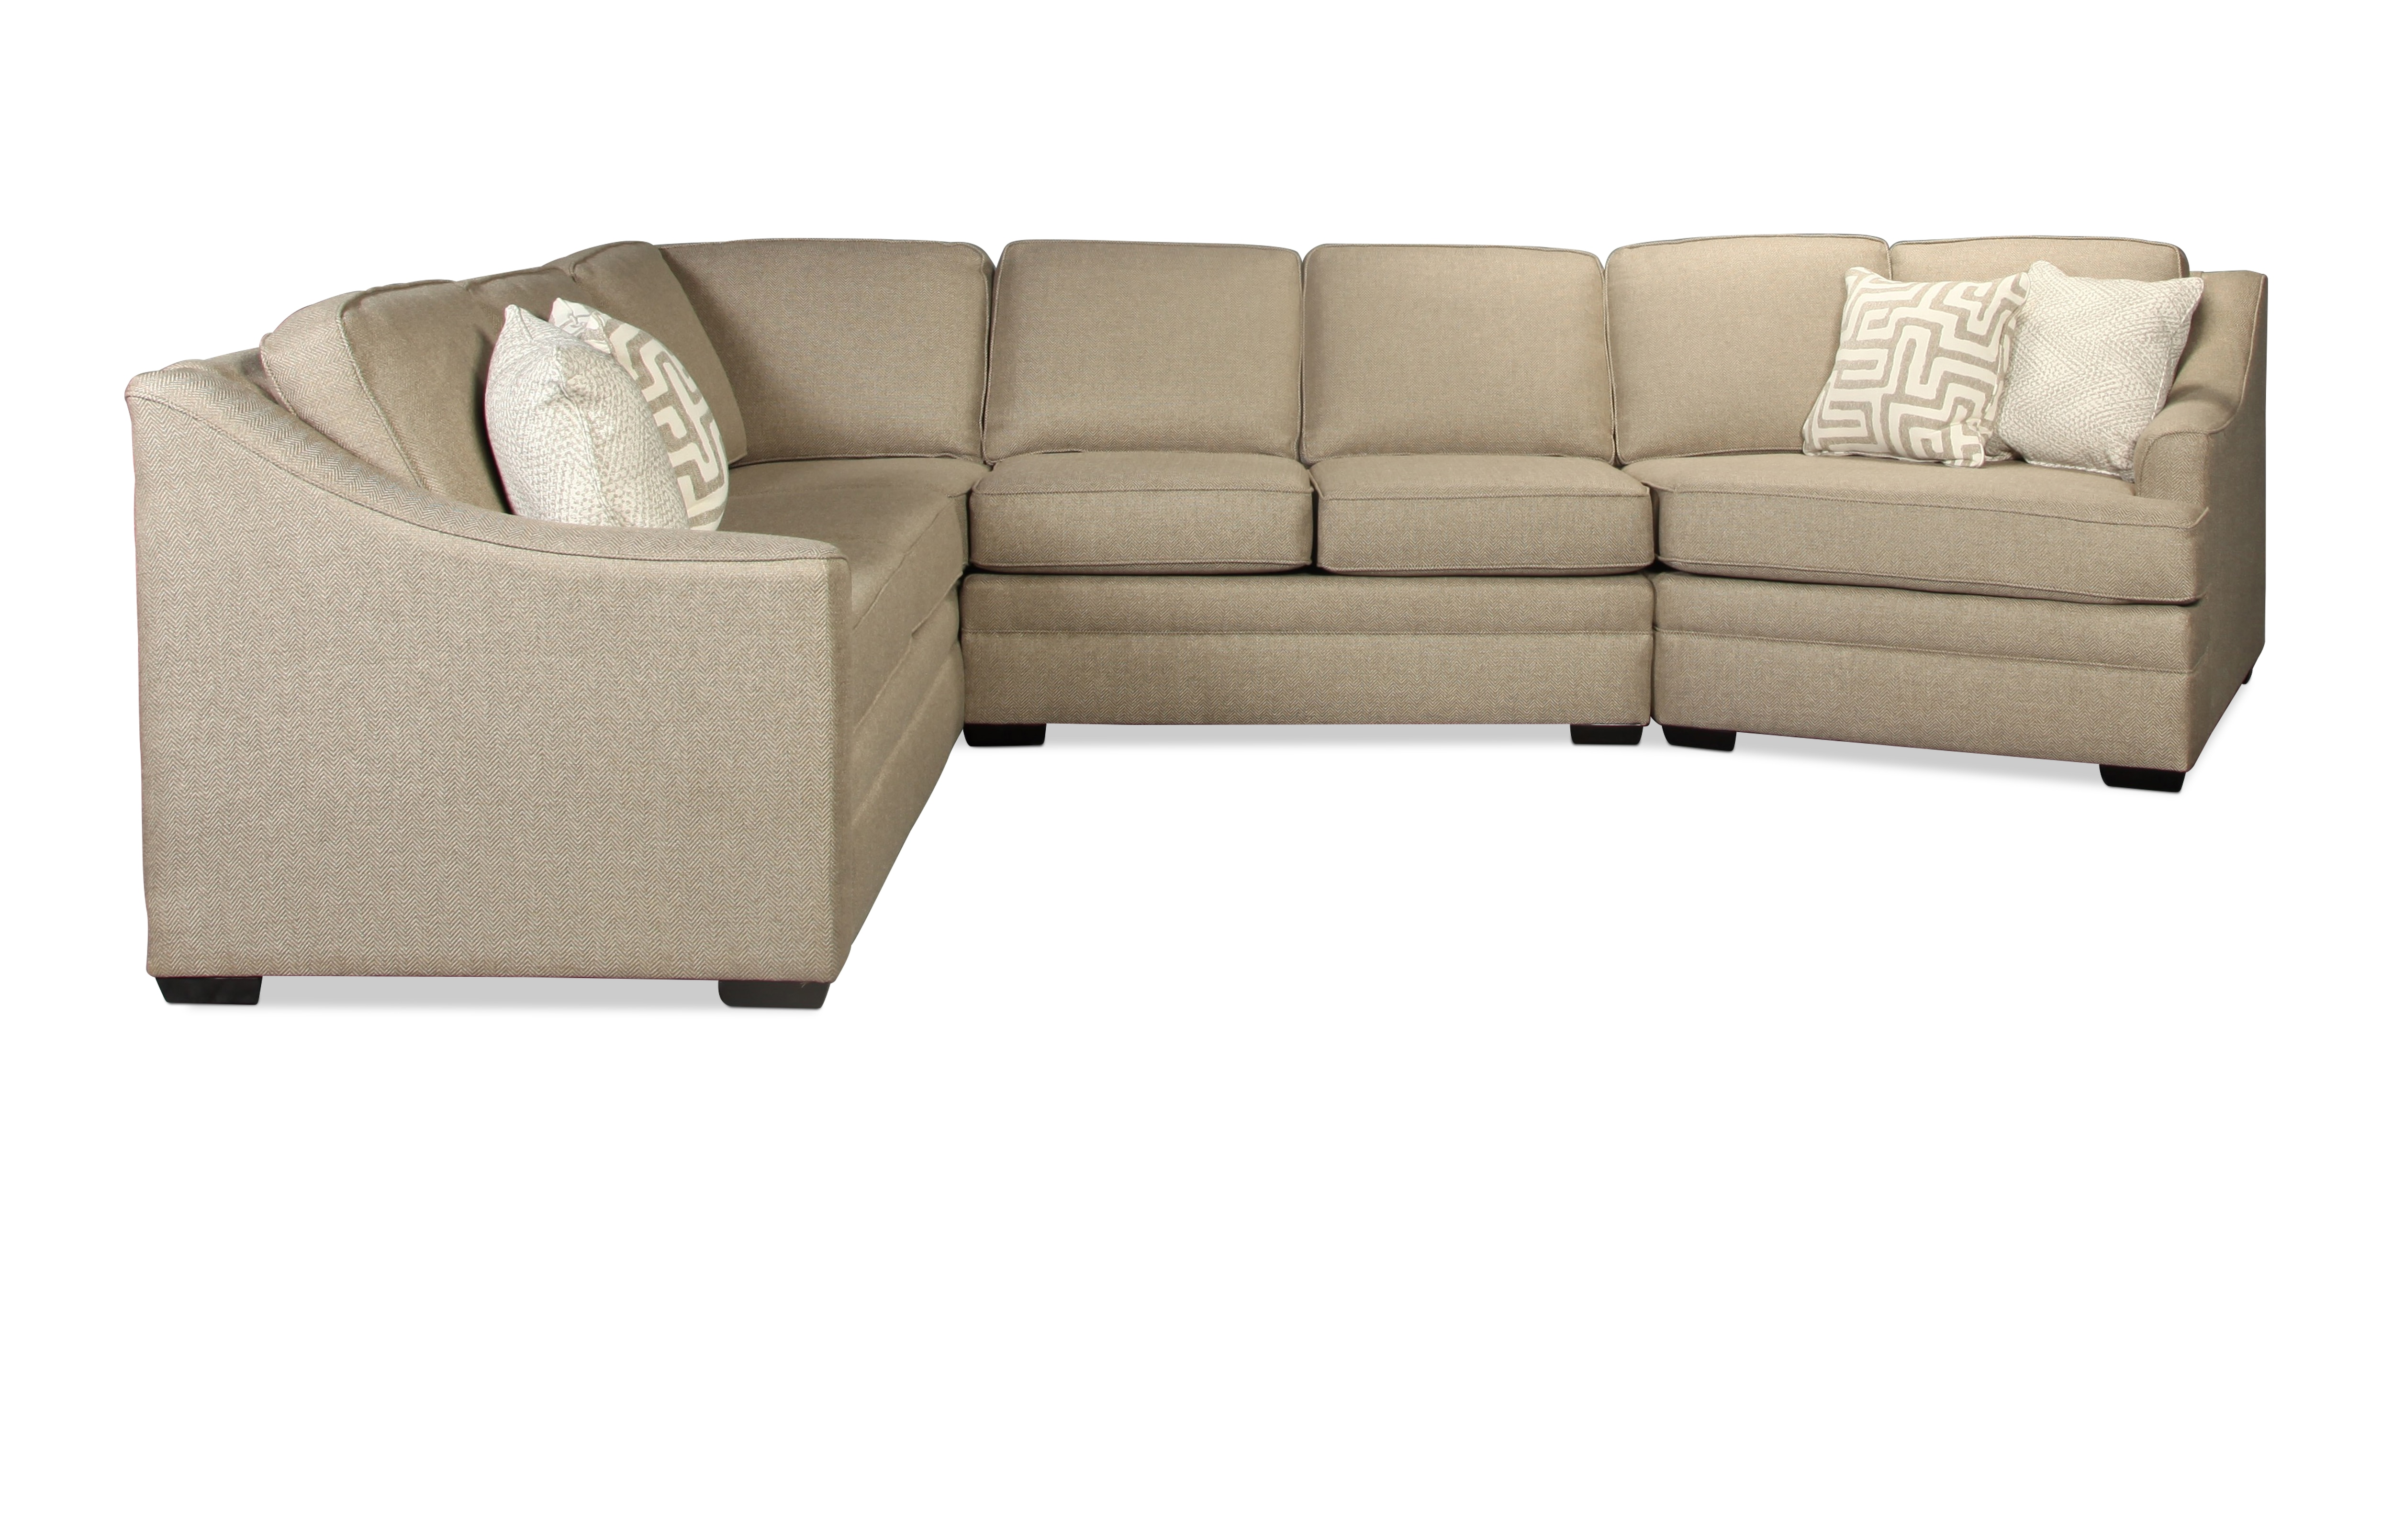 Brantly 3 Piece Sectional